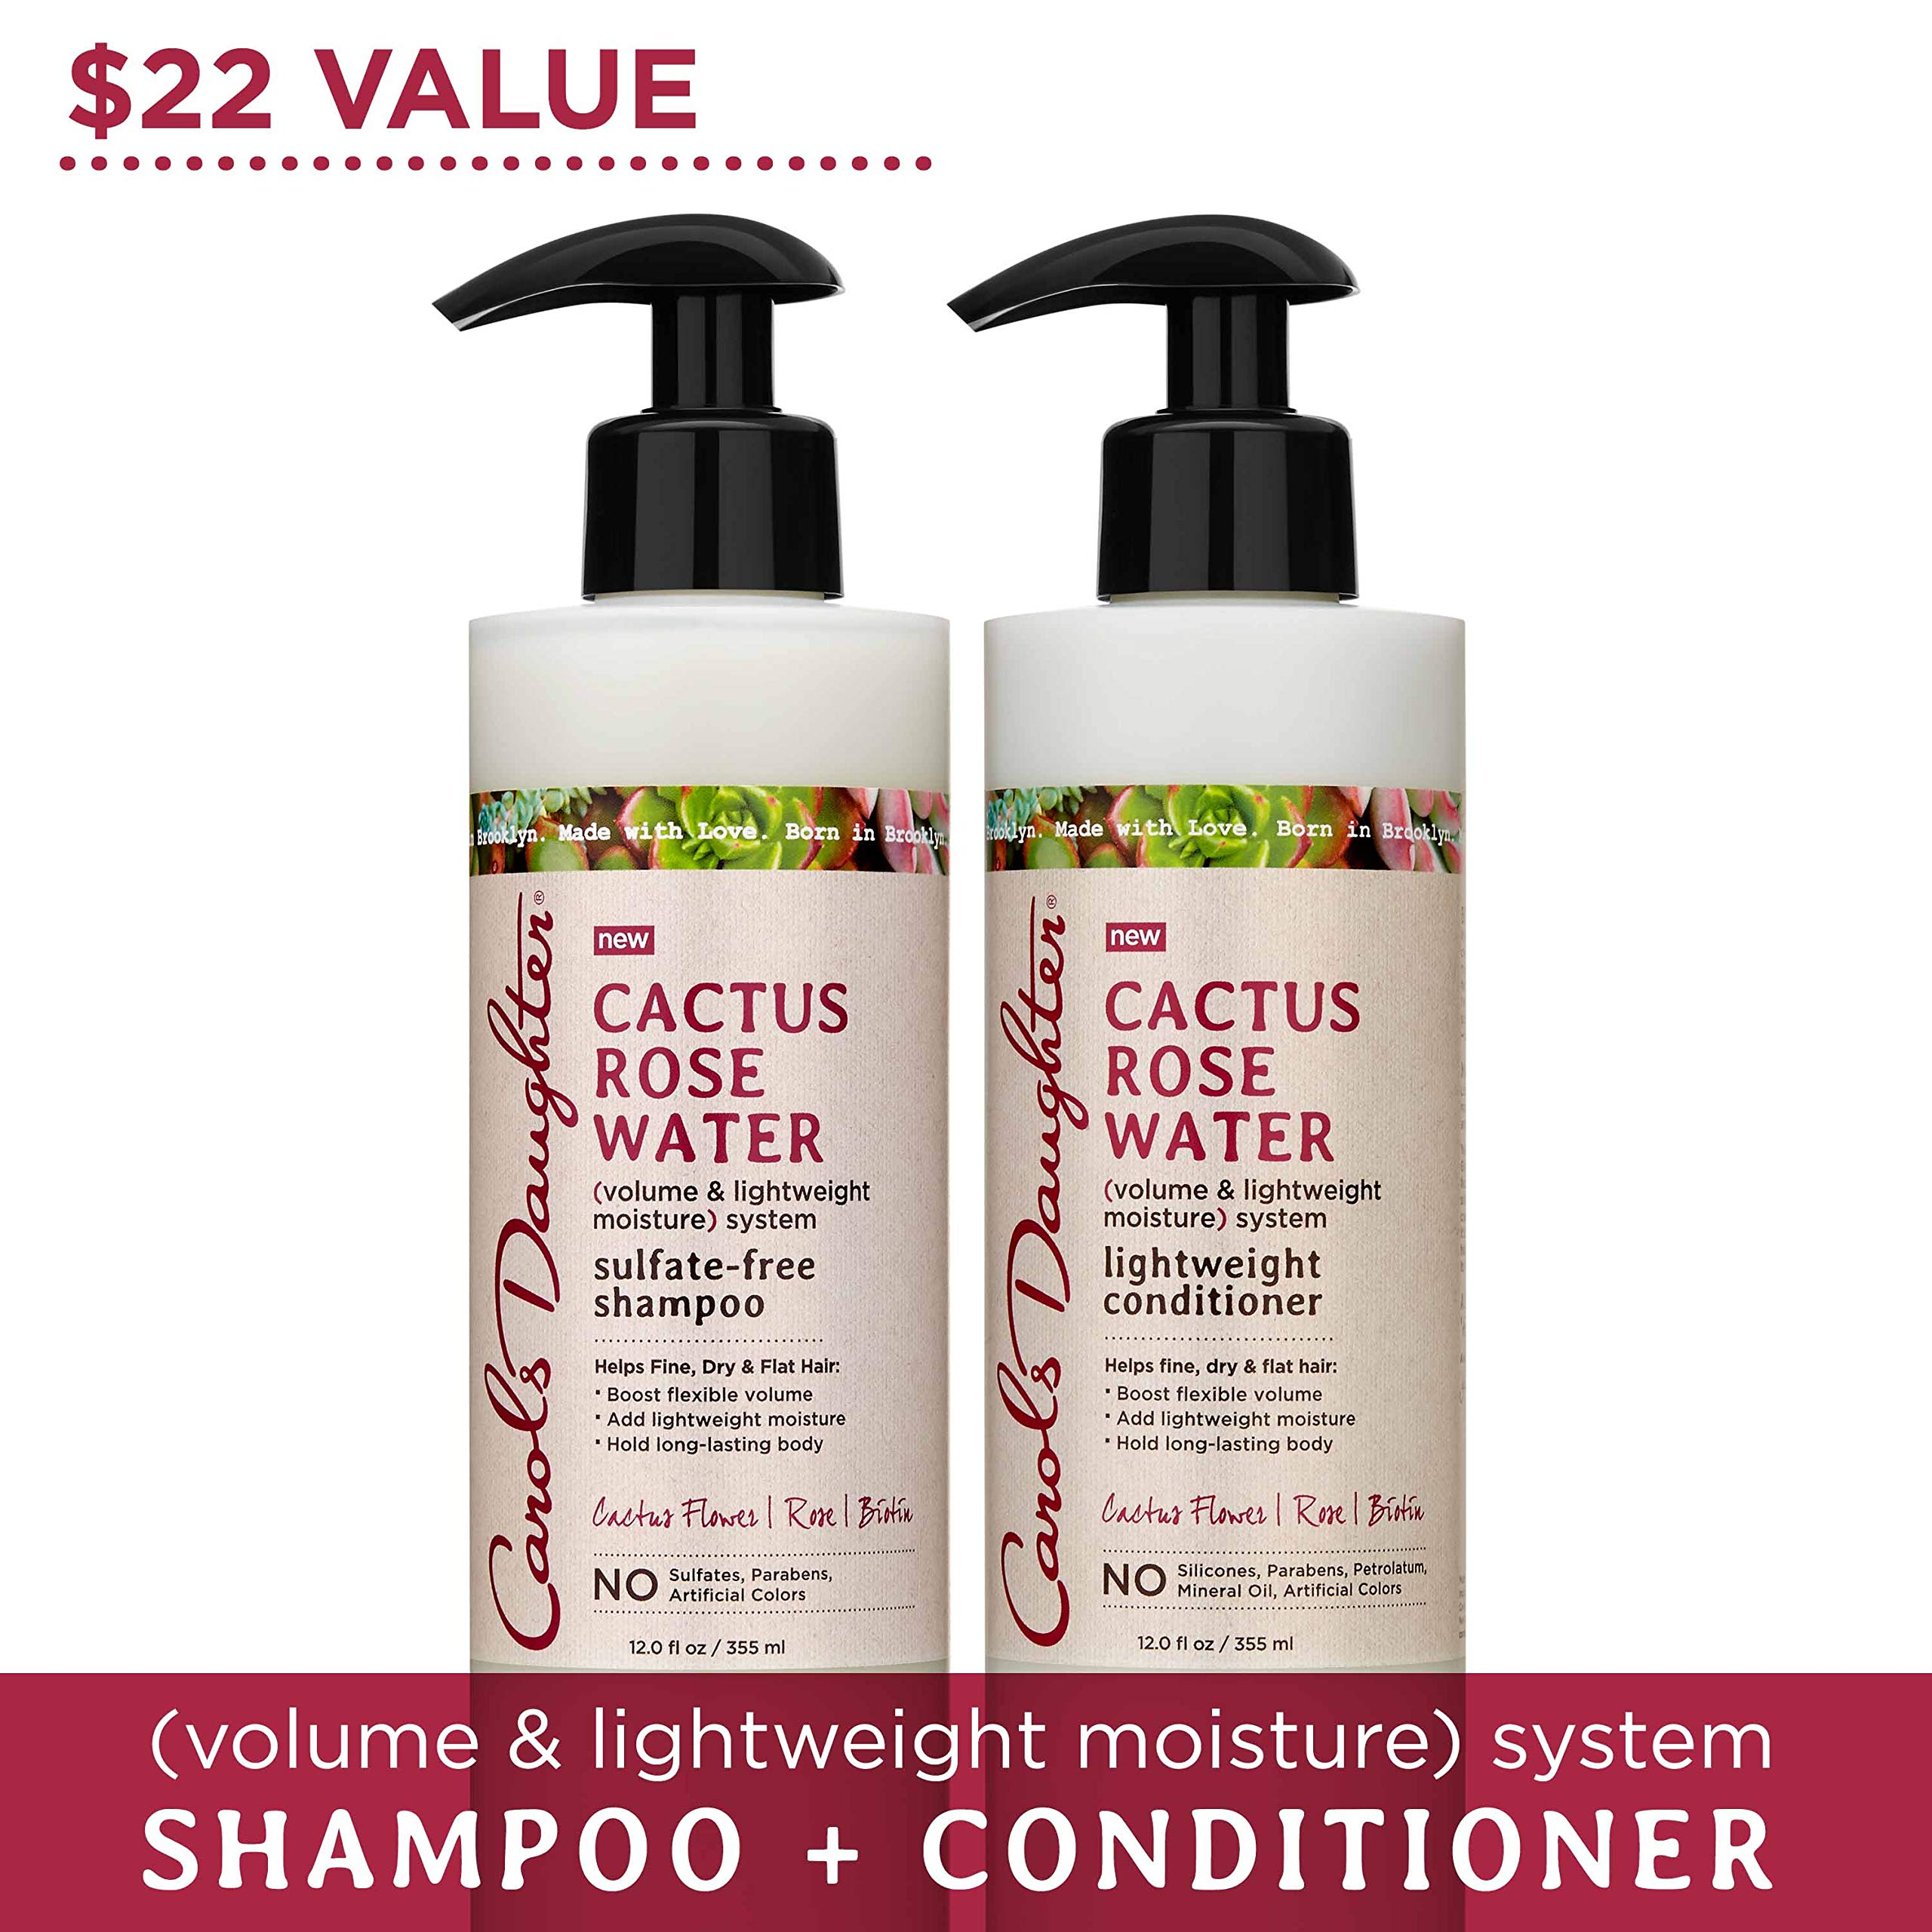 Carol's Daughter Cactus Rose Water Sulfate Free Shampoo and Conditioner Set For Fine Hair, Dry Hair, Flat Hair, with Cactus Flower Extract, Rose Water, and Biotin, Paraben Free by Carol's Daughter